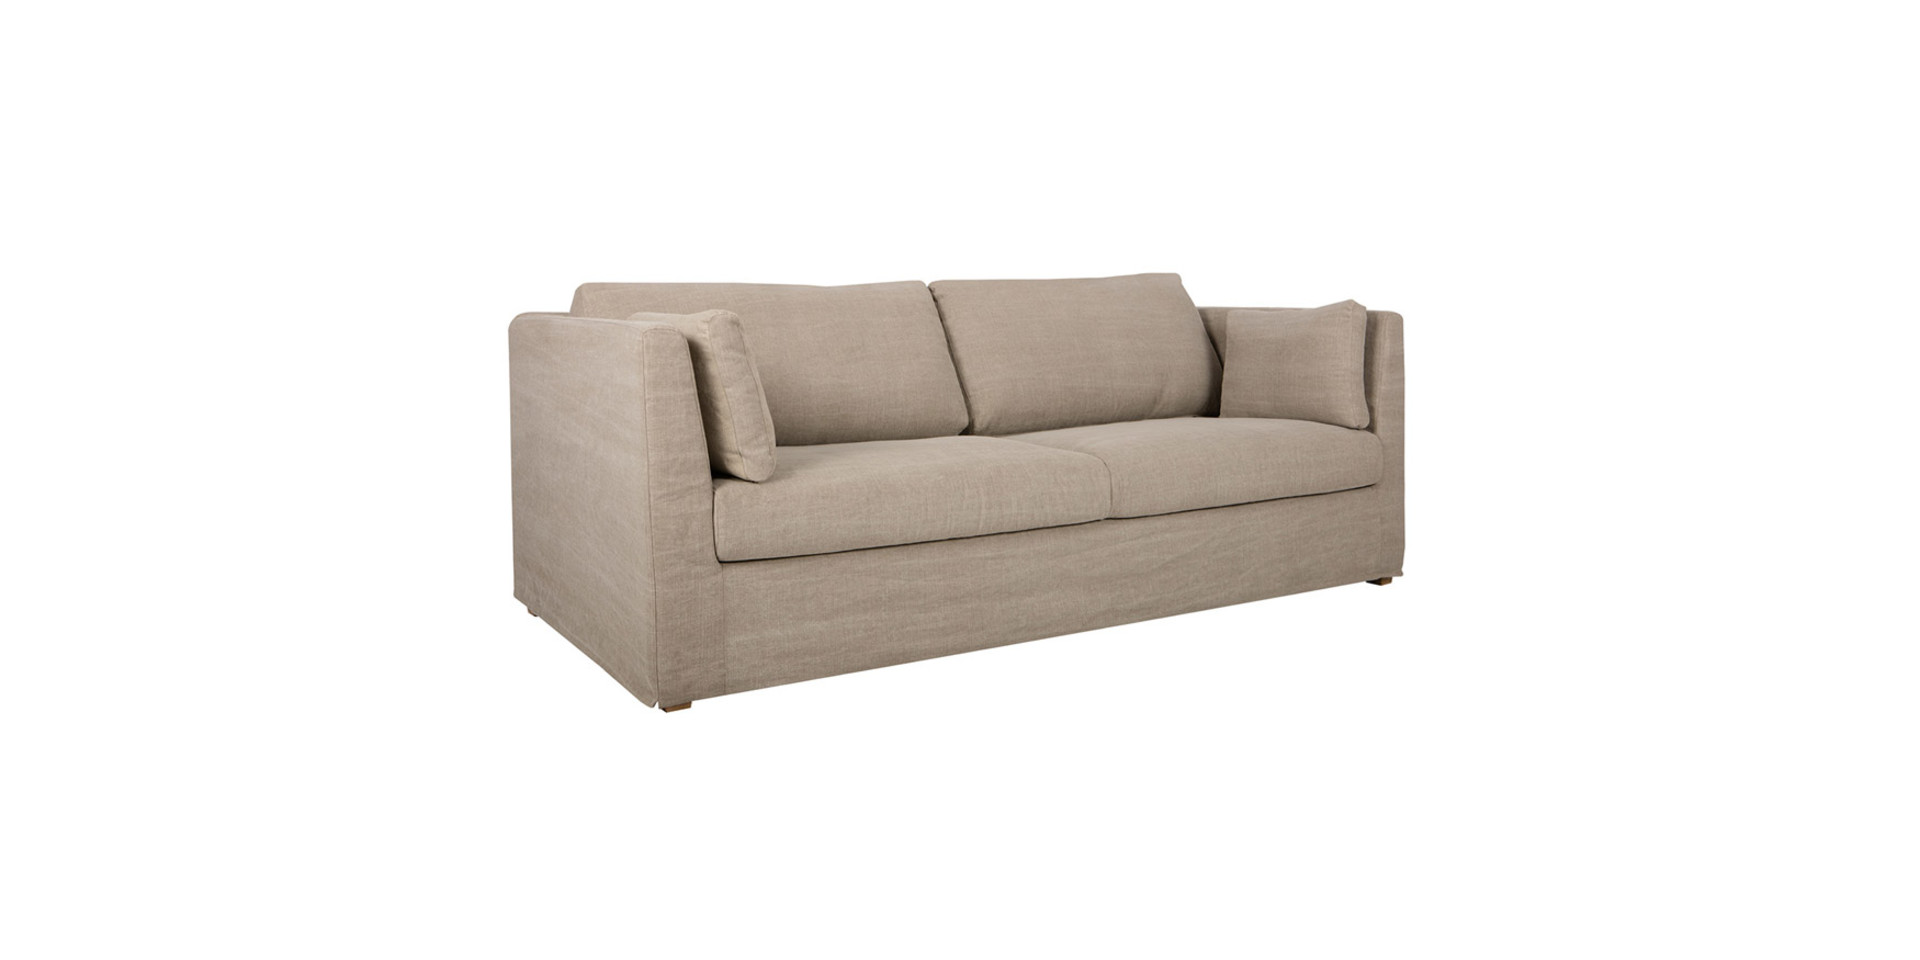 sits-ola-canape-3seater_kiss1_natural_2